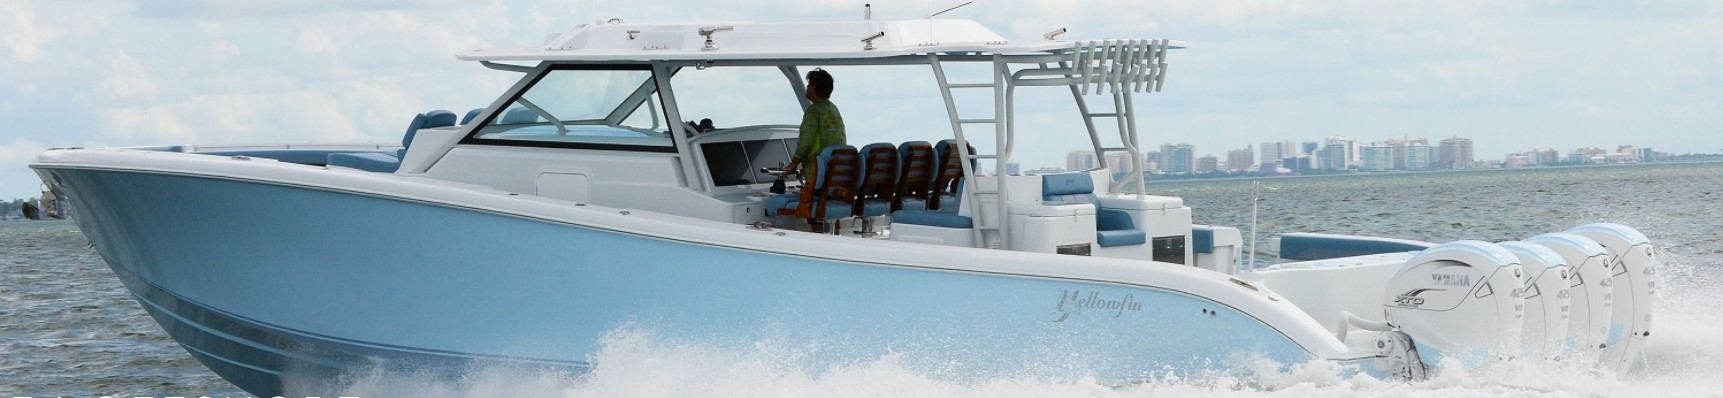 Yellowfin 54 OFFSHORE